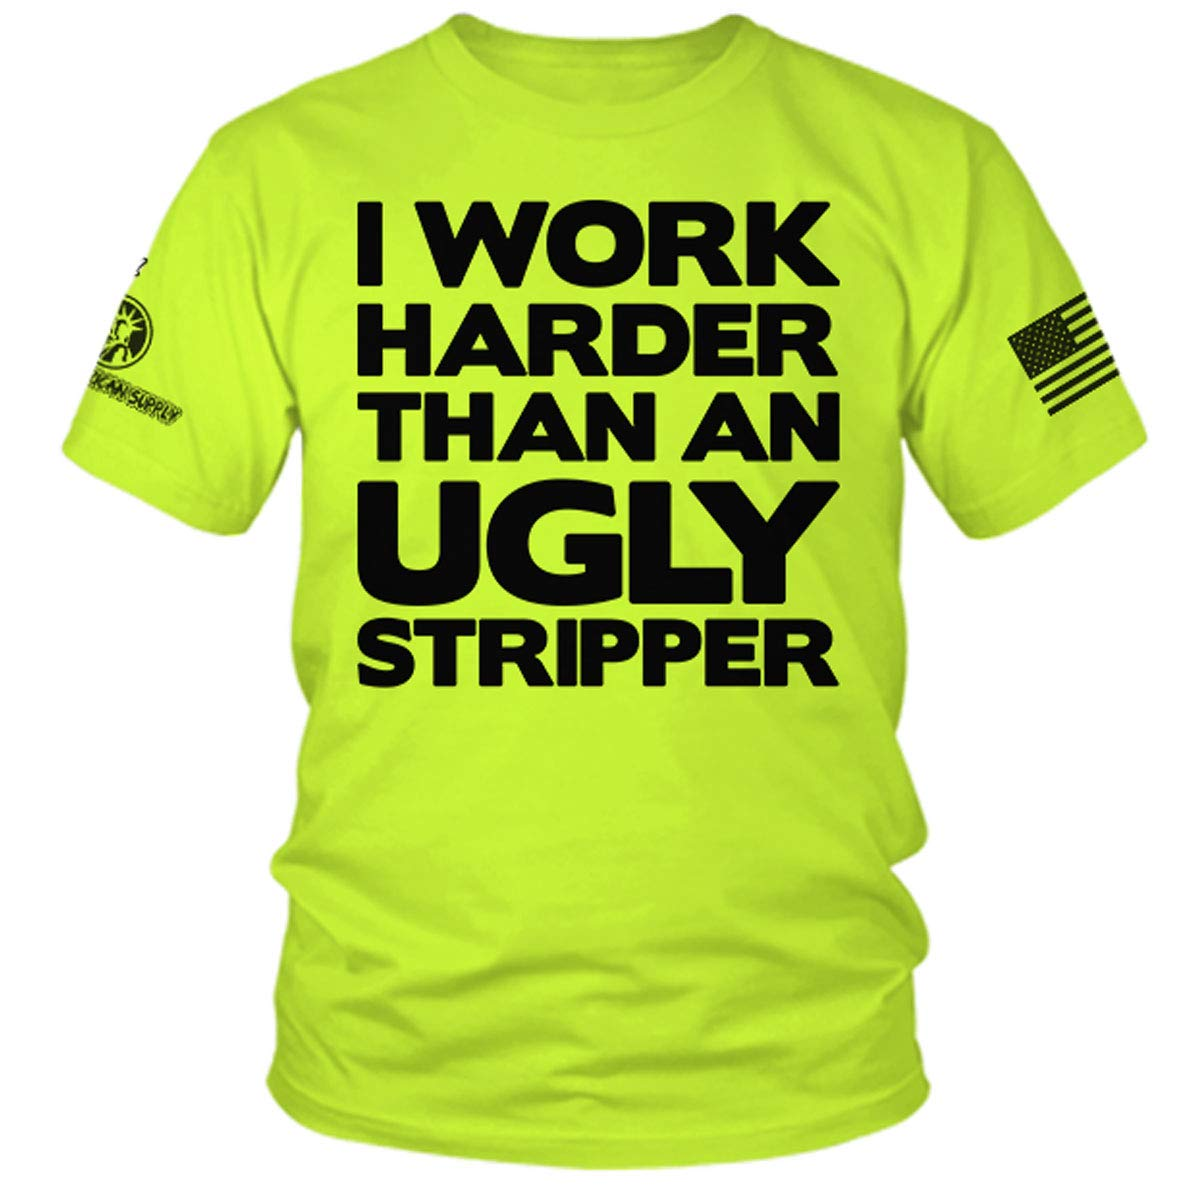 Work Harder Than an Ugly Stripper - Hi Vis Safety Yellow Funny Construction Work Shirt (5X)